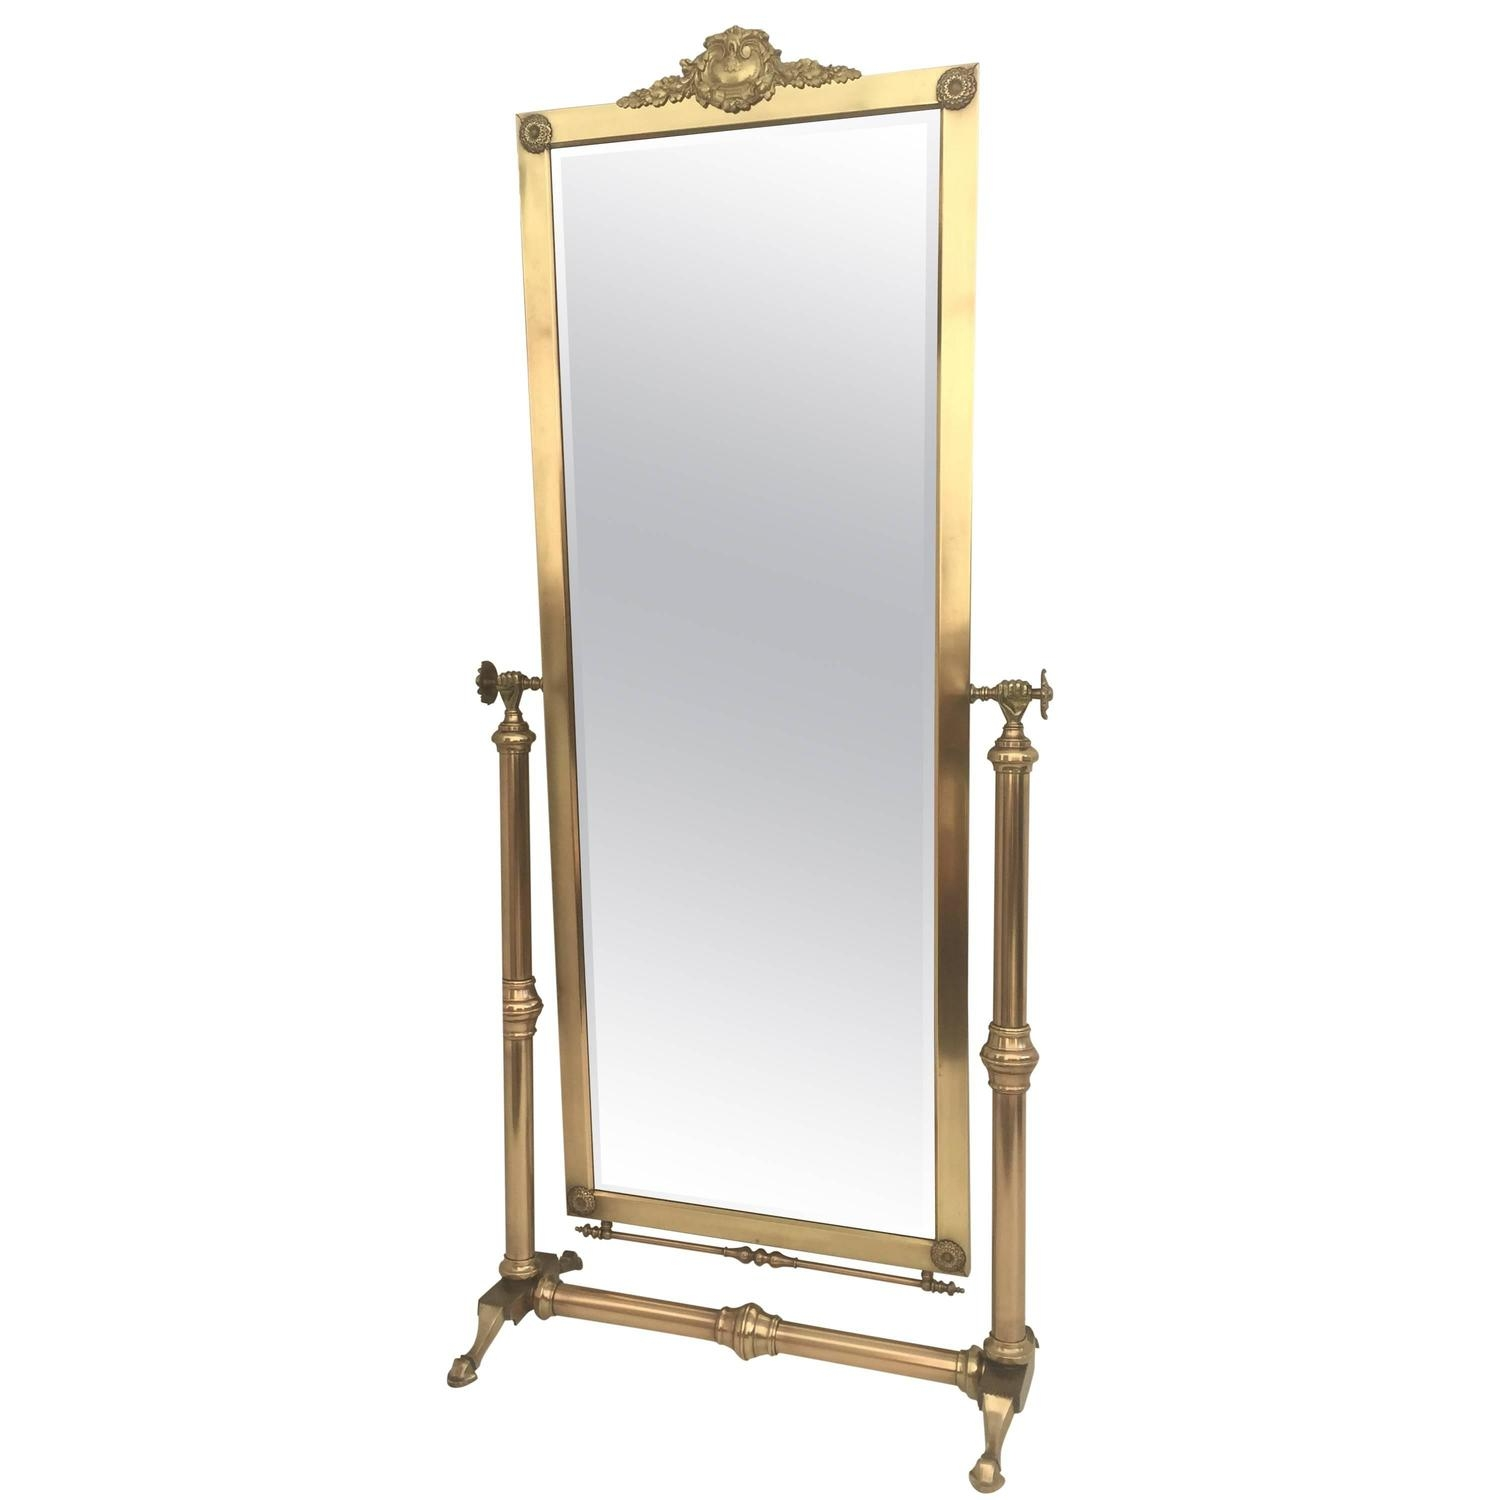 Brass Floor Length Mirror Floor Ideas In Brass Mirrors For Sale (Image 2 of 15)